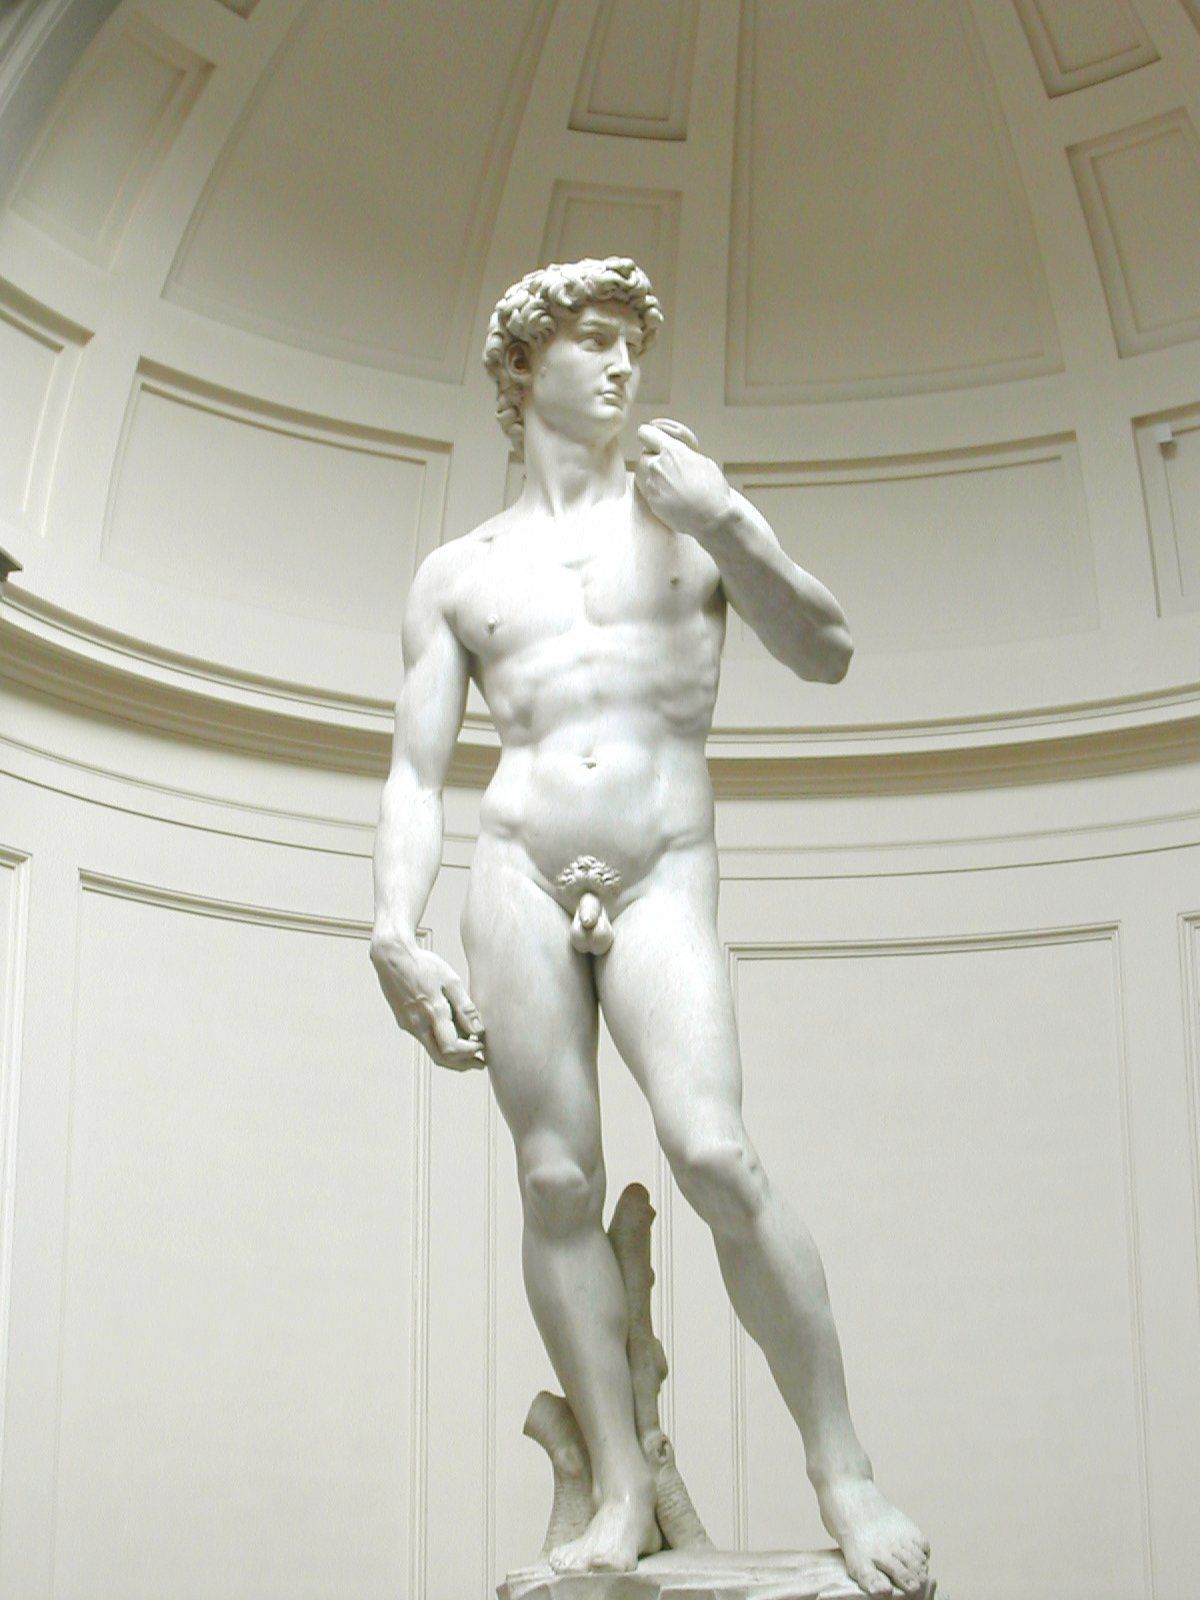 Seems michelangelo s david pity